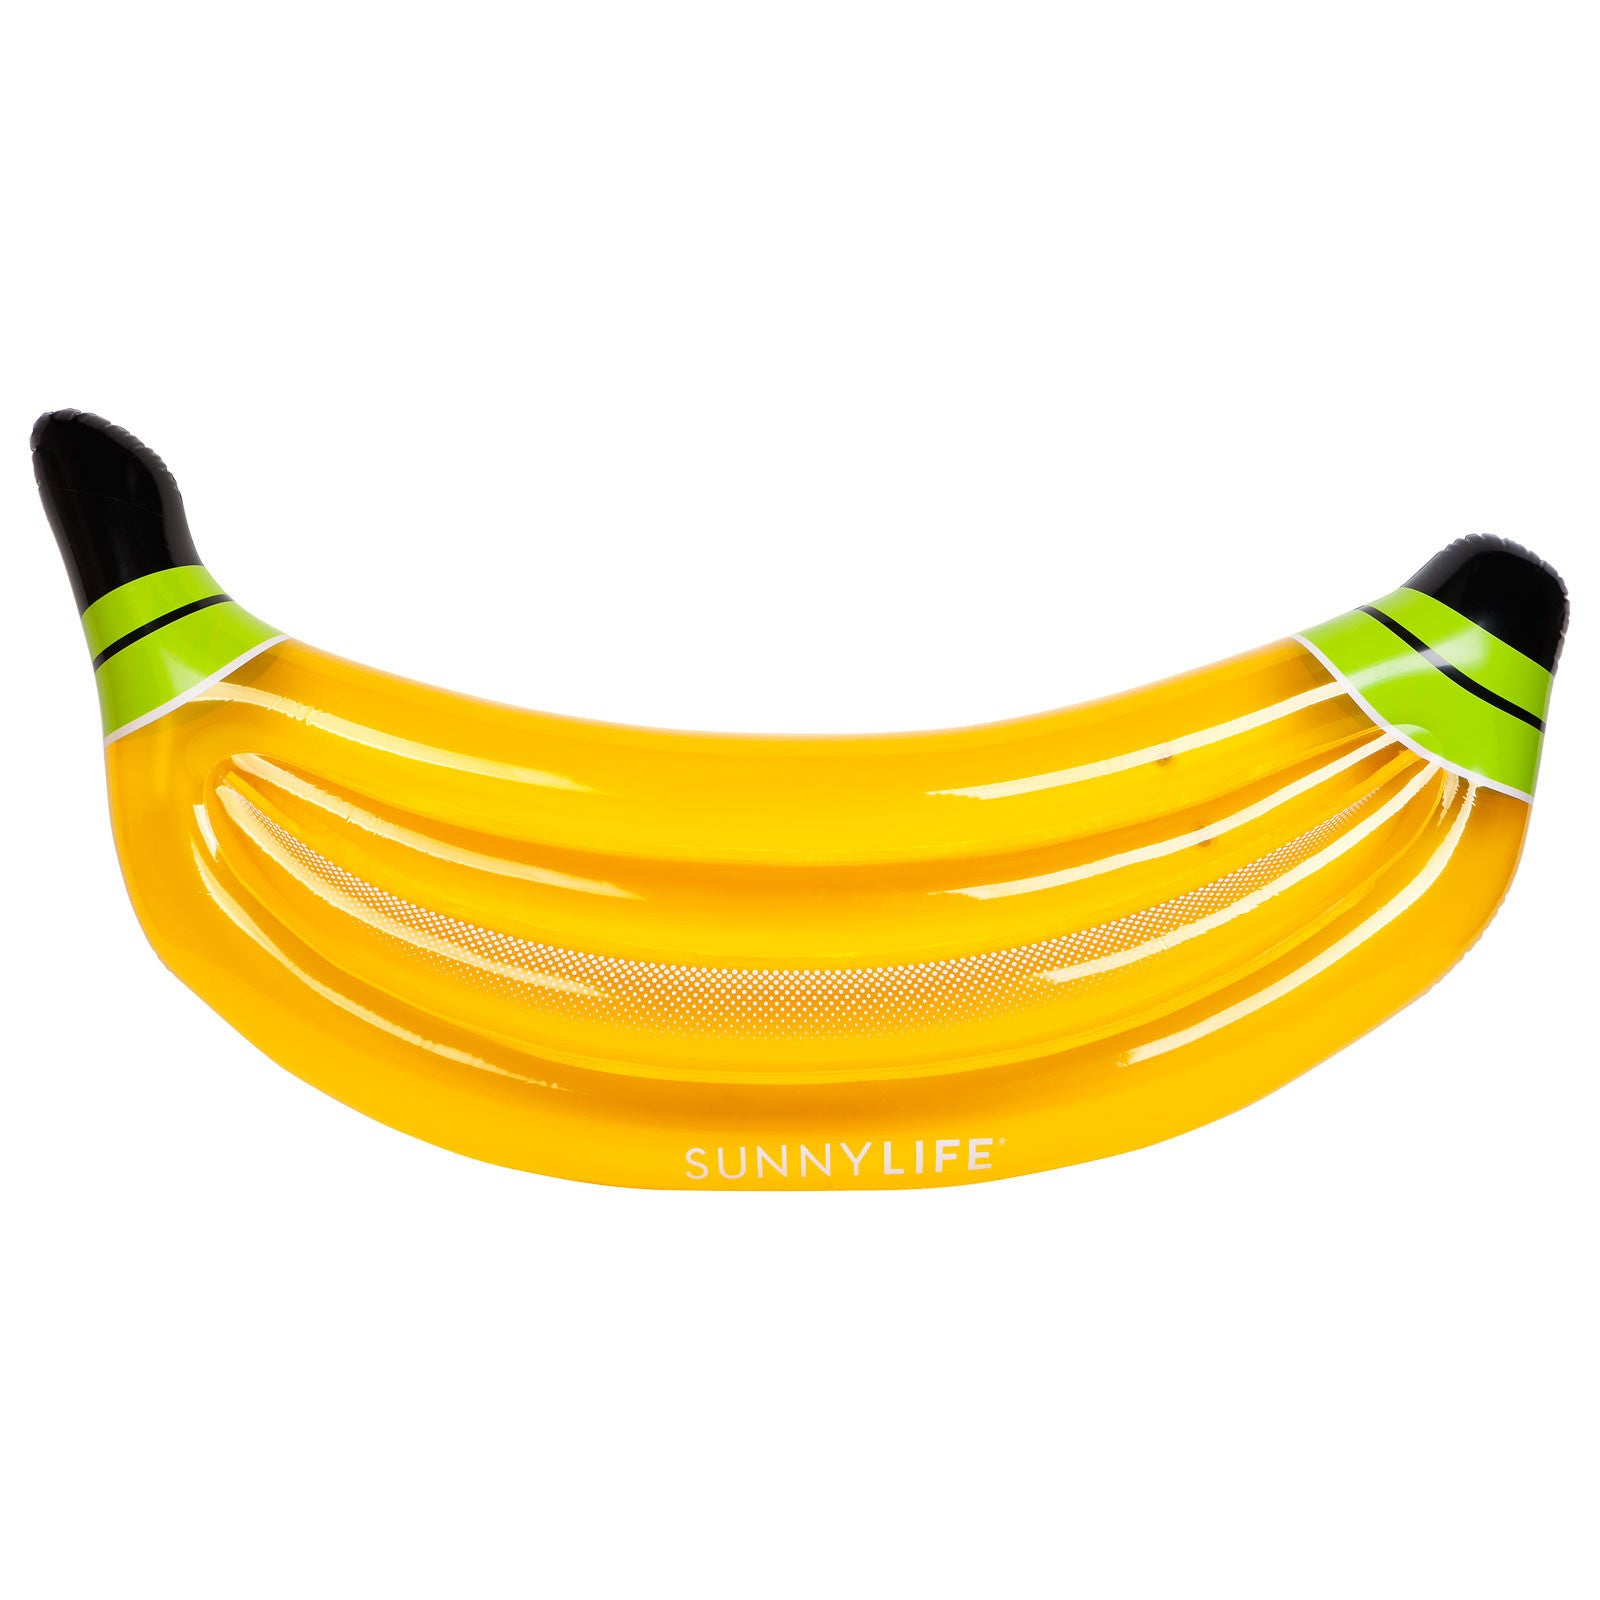 SUNNYLIFE Luxe Lie-on Float Banana